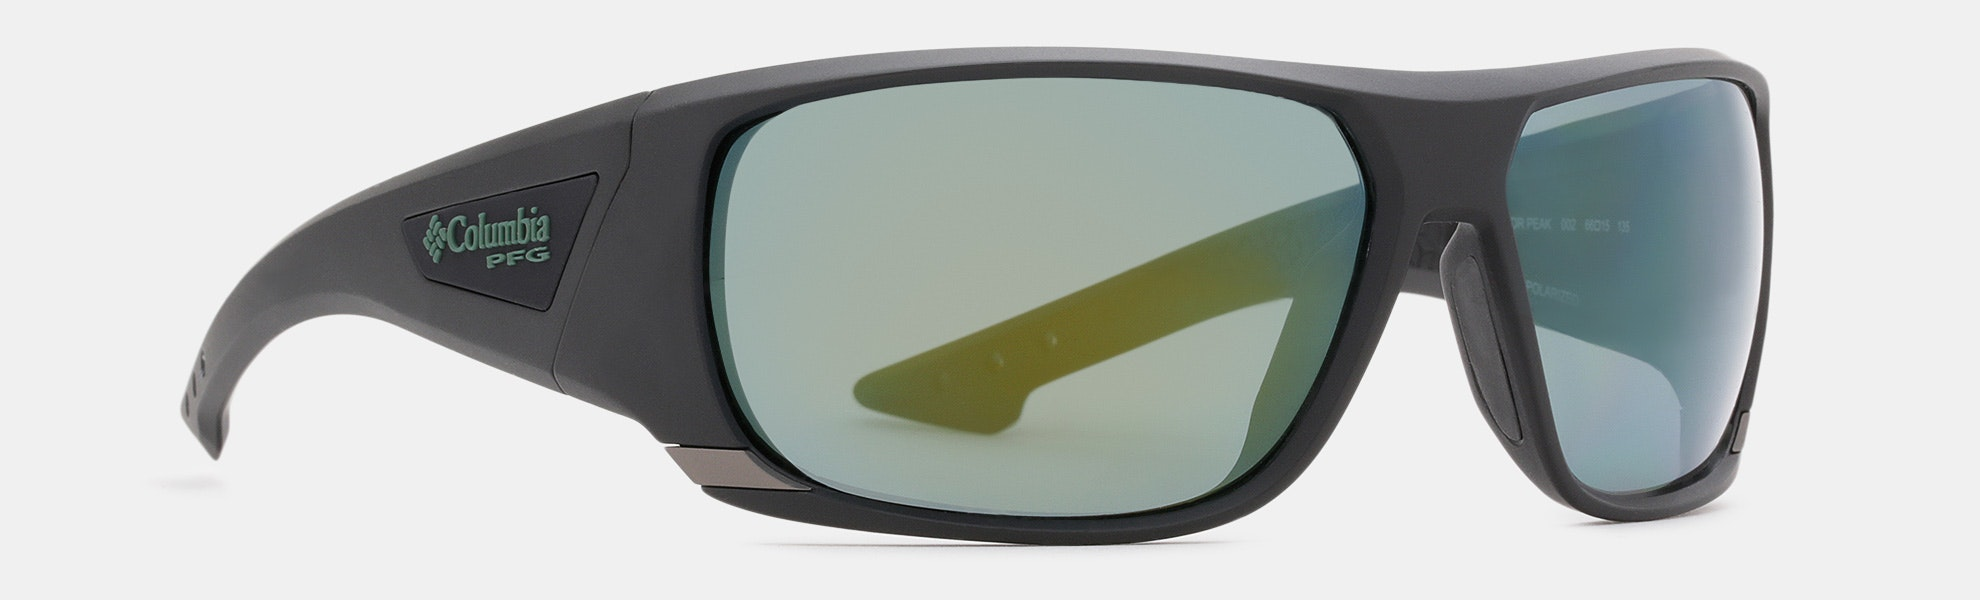 Columbia Arbor Peak PFG Polarized Sunglasses